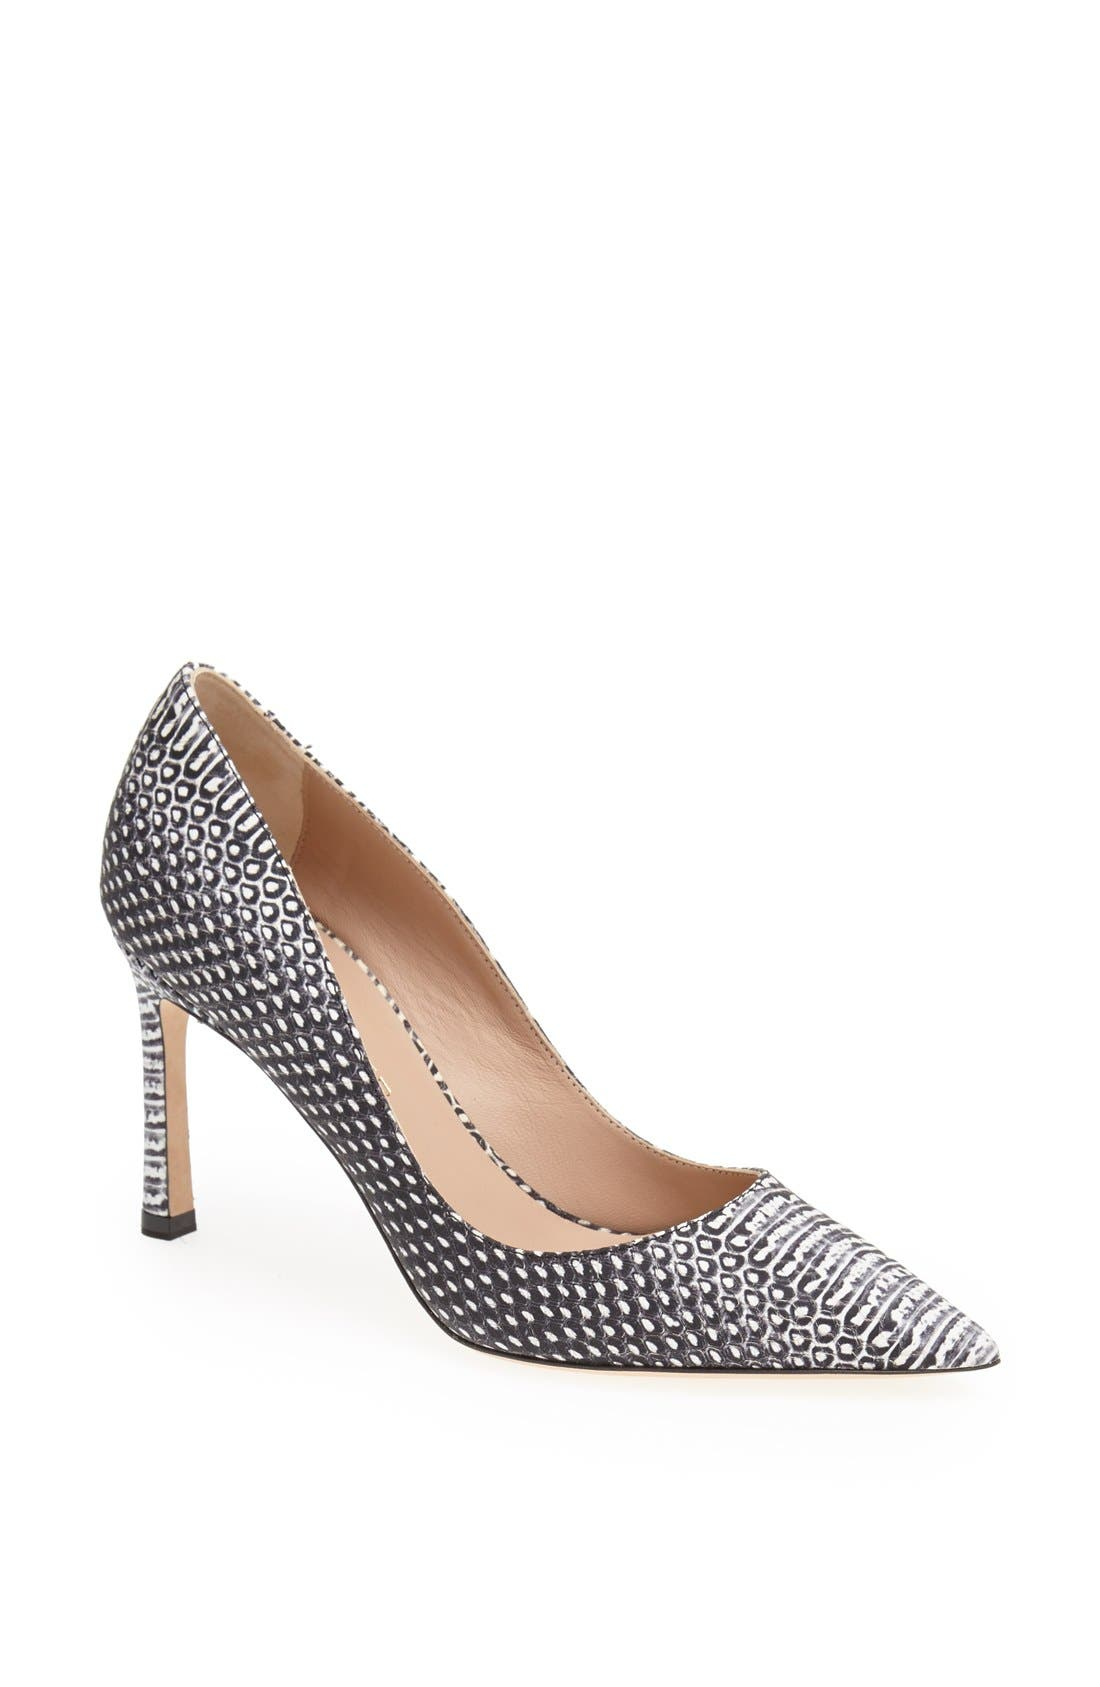 Alternate Image 1 Selected - Kurt Geiger London 'Catherine' Pointy Toe Pump